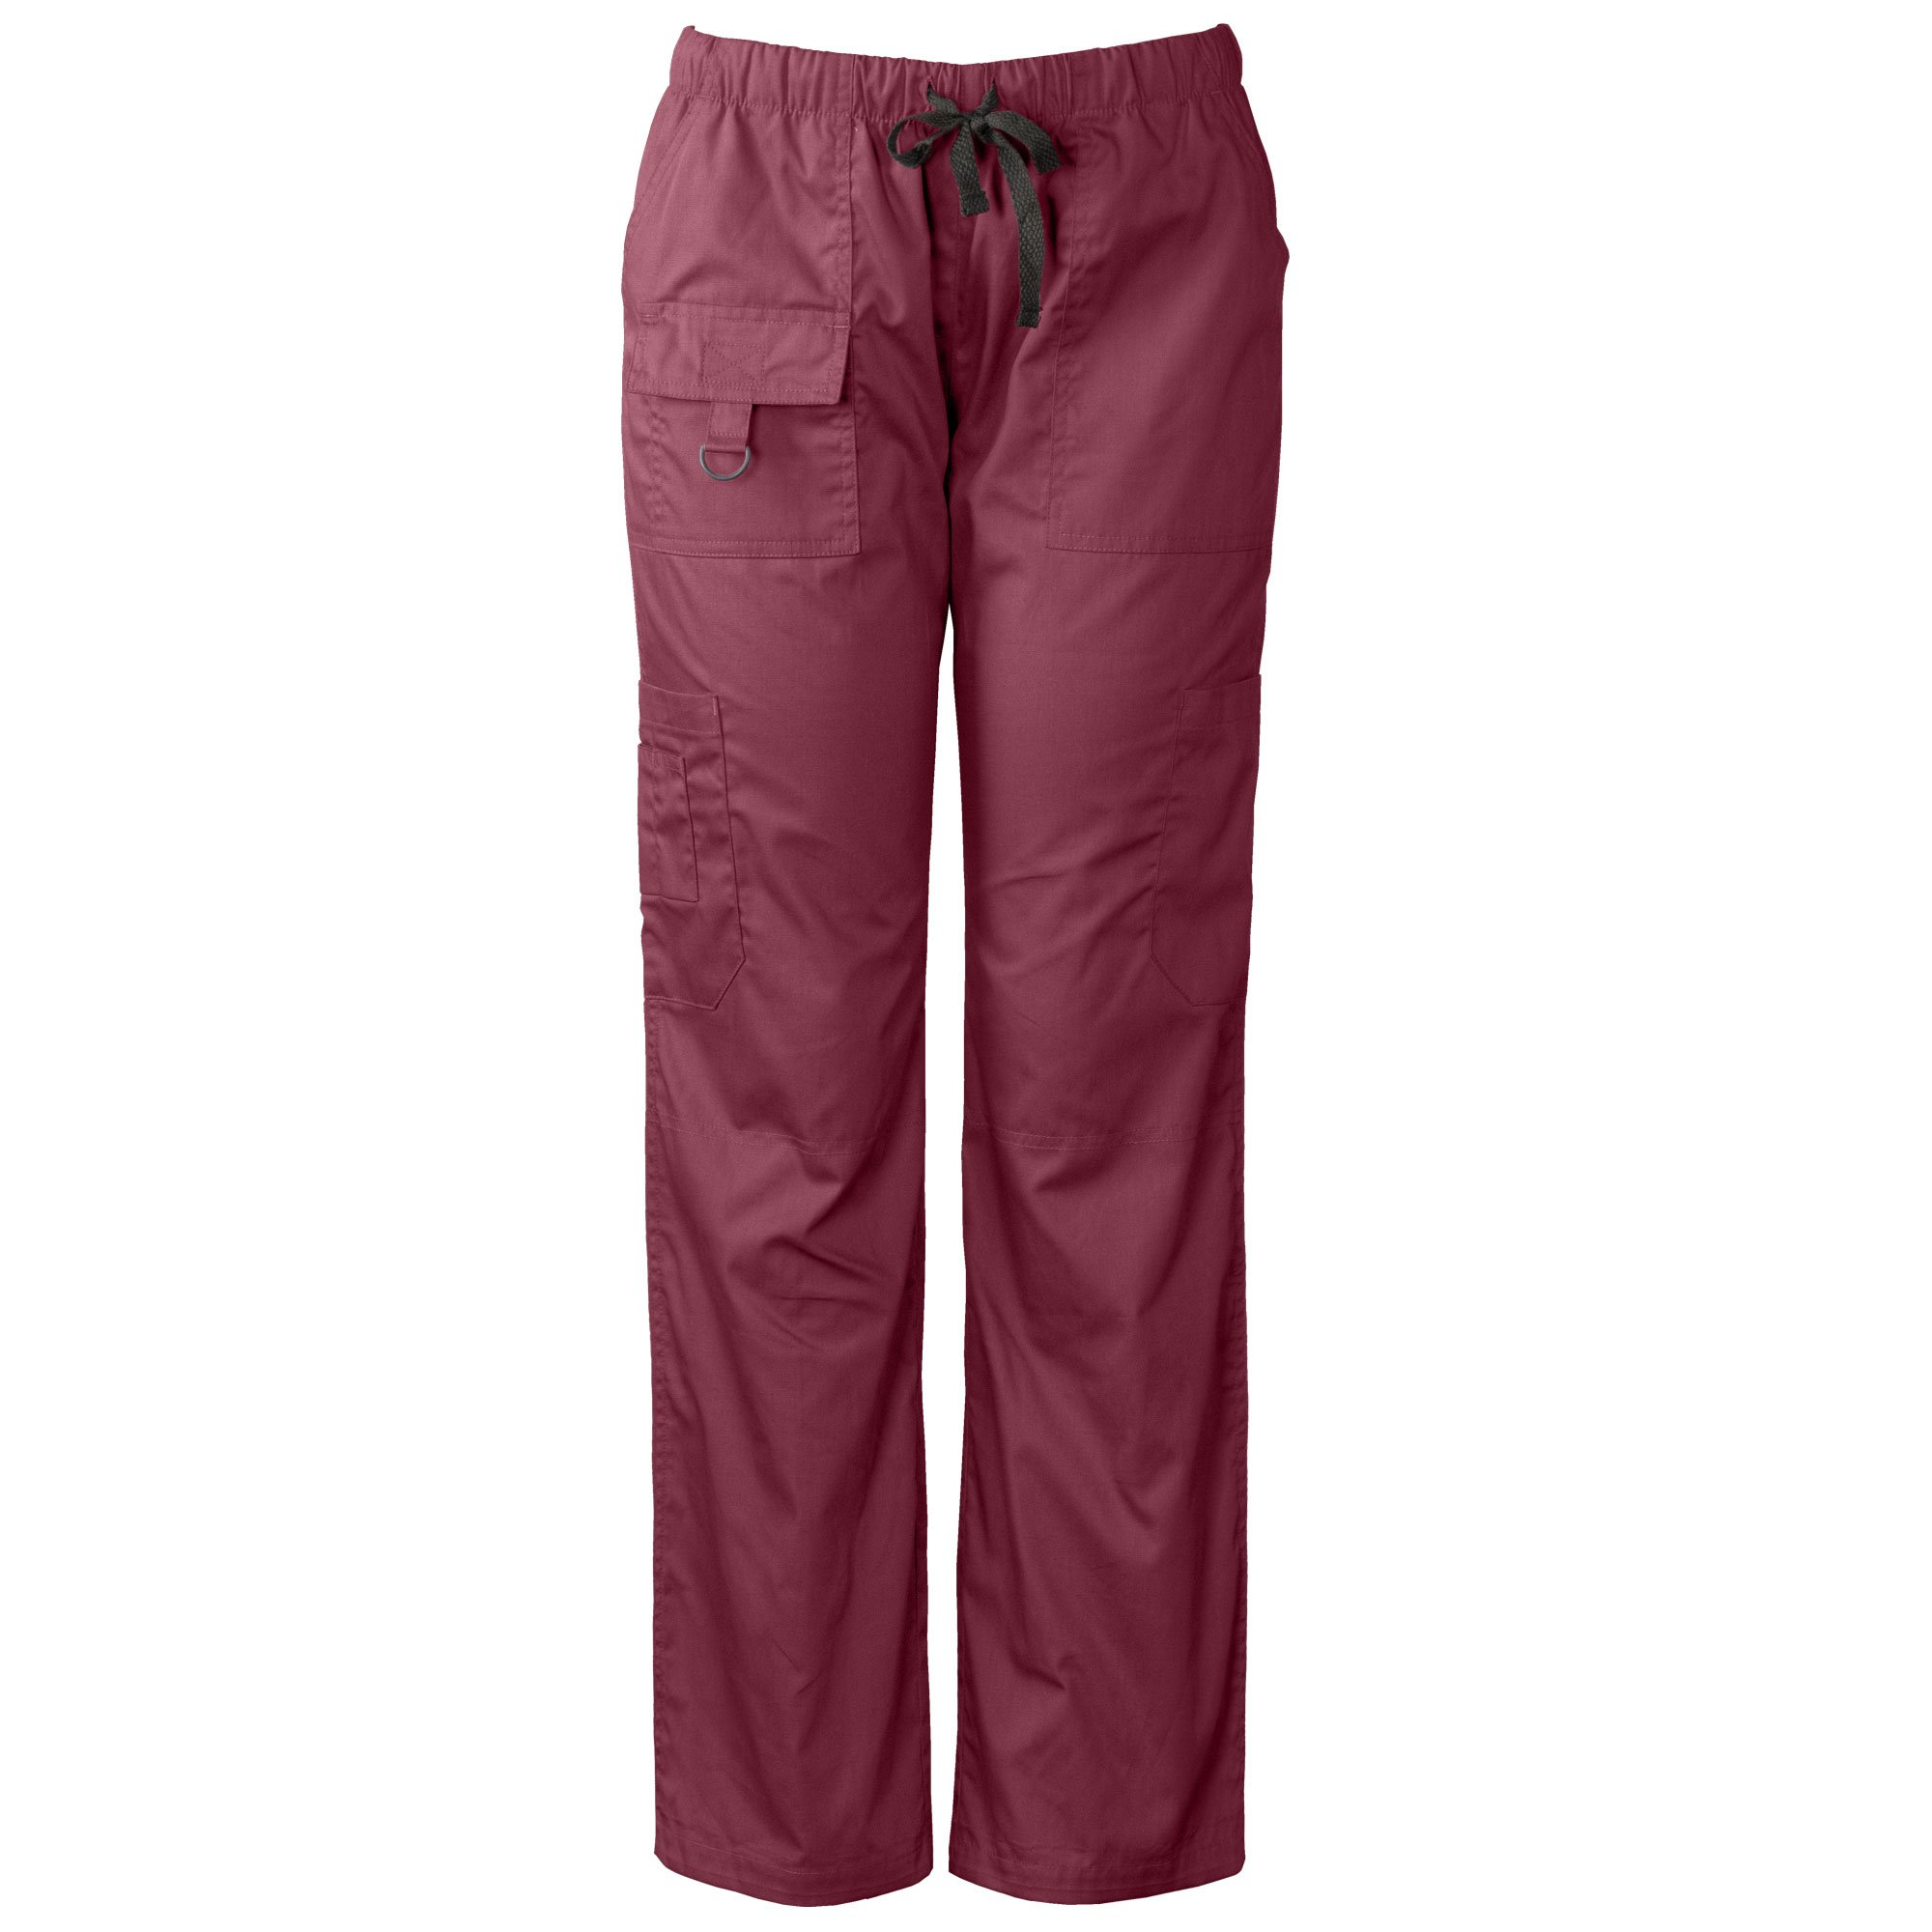 Medgear Womens Scrubs Pants, Utility Style with 7 Pockets and Loop 2043 (M, Burgundy)